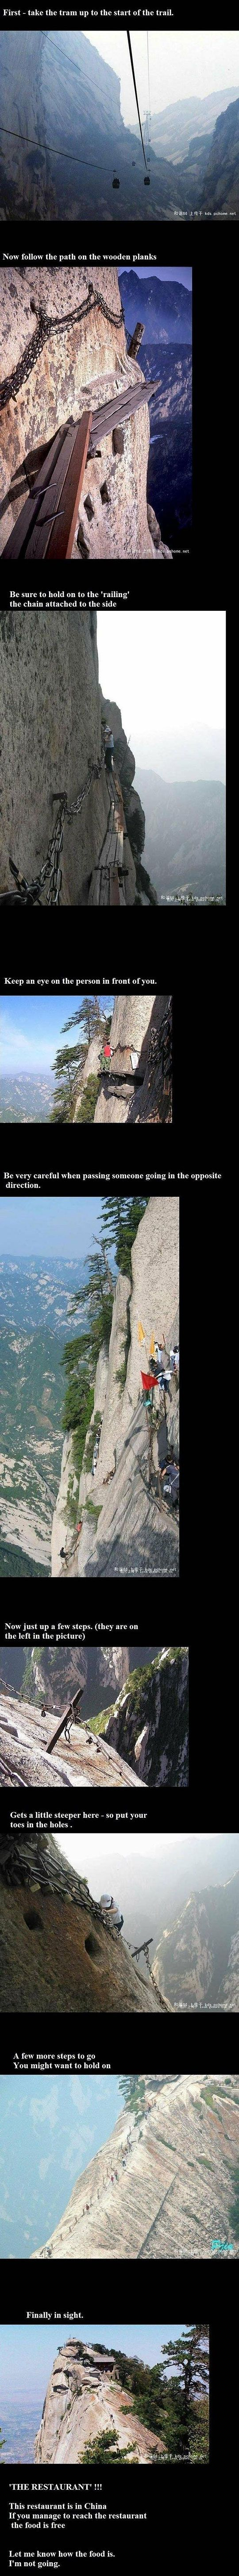 Mount Huashan in China. There is not a restaurant at the end, but a temple/viewpoint. (Click to view full size pic).